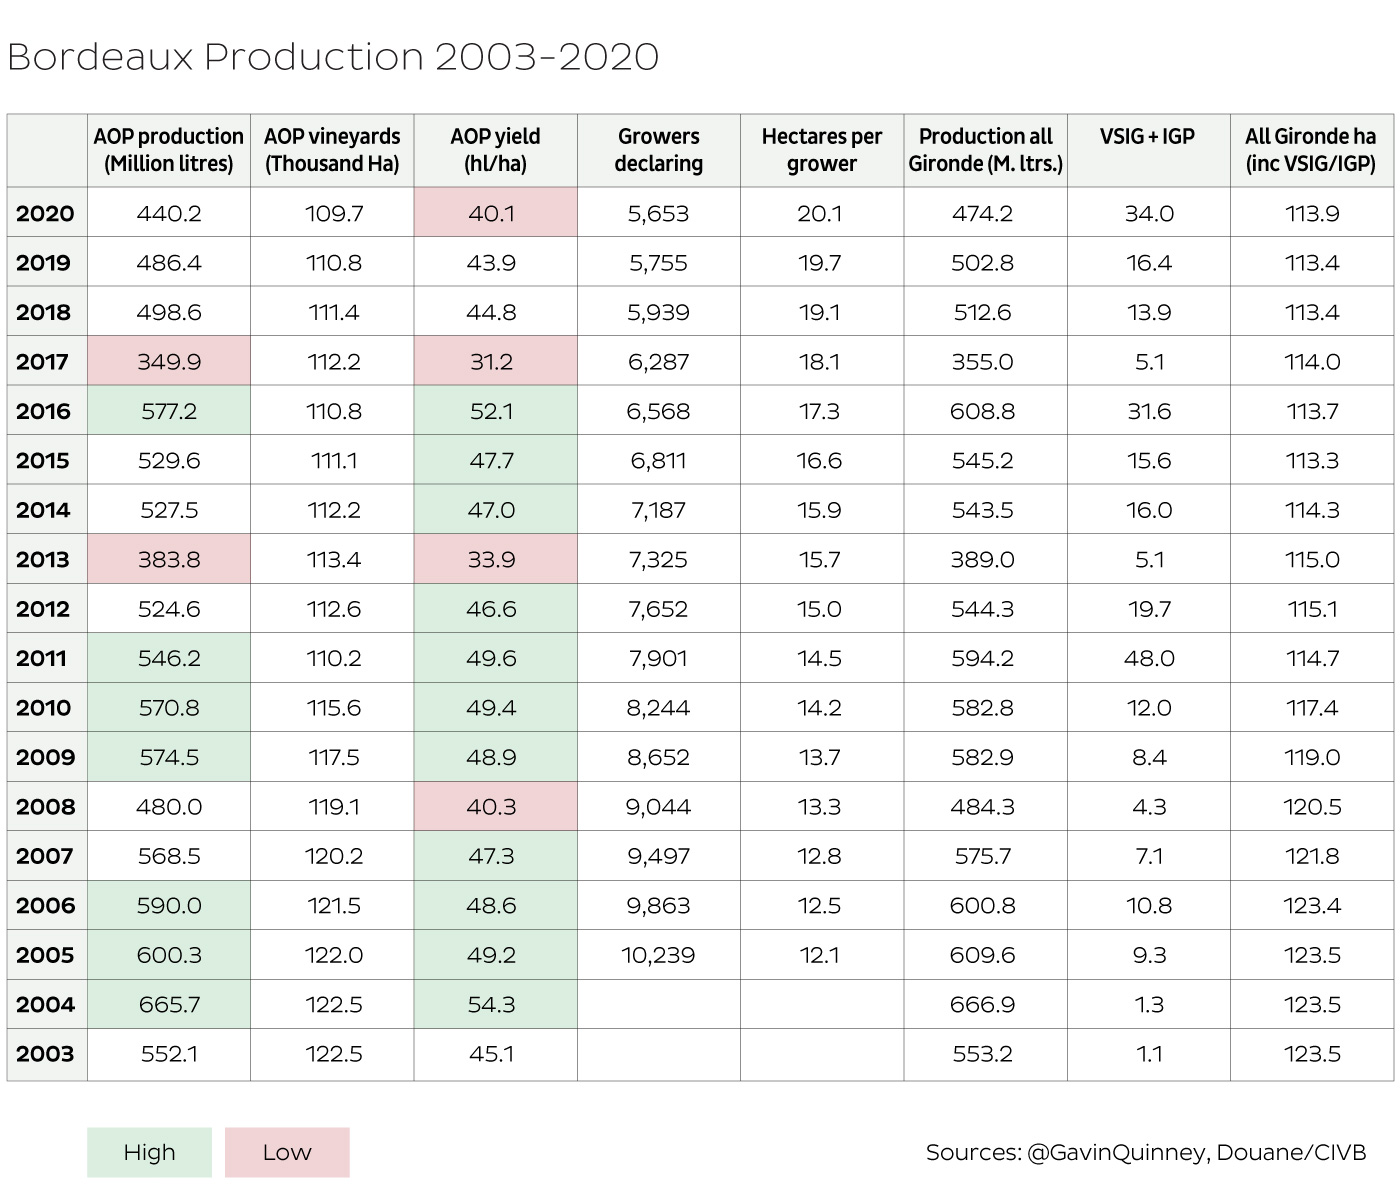 Bordeaux production overview 1985-2020